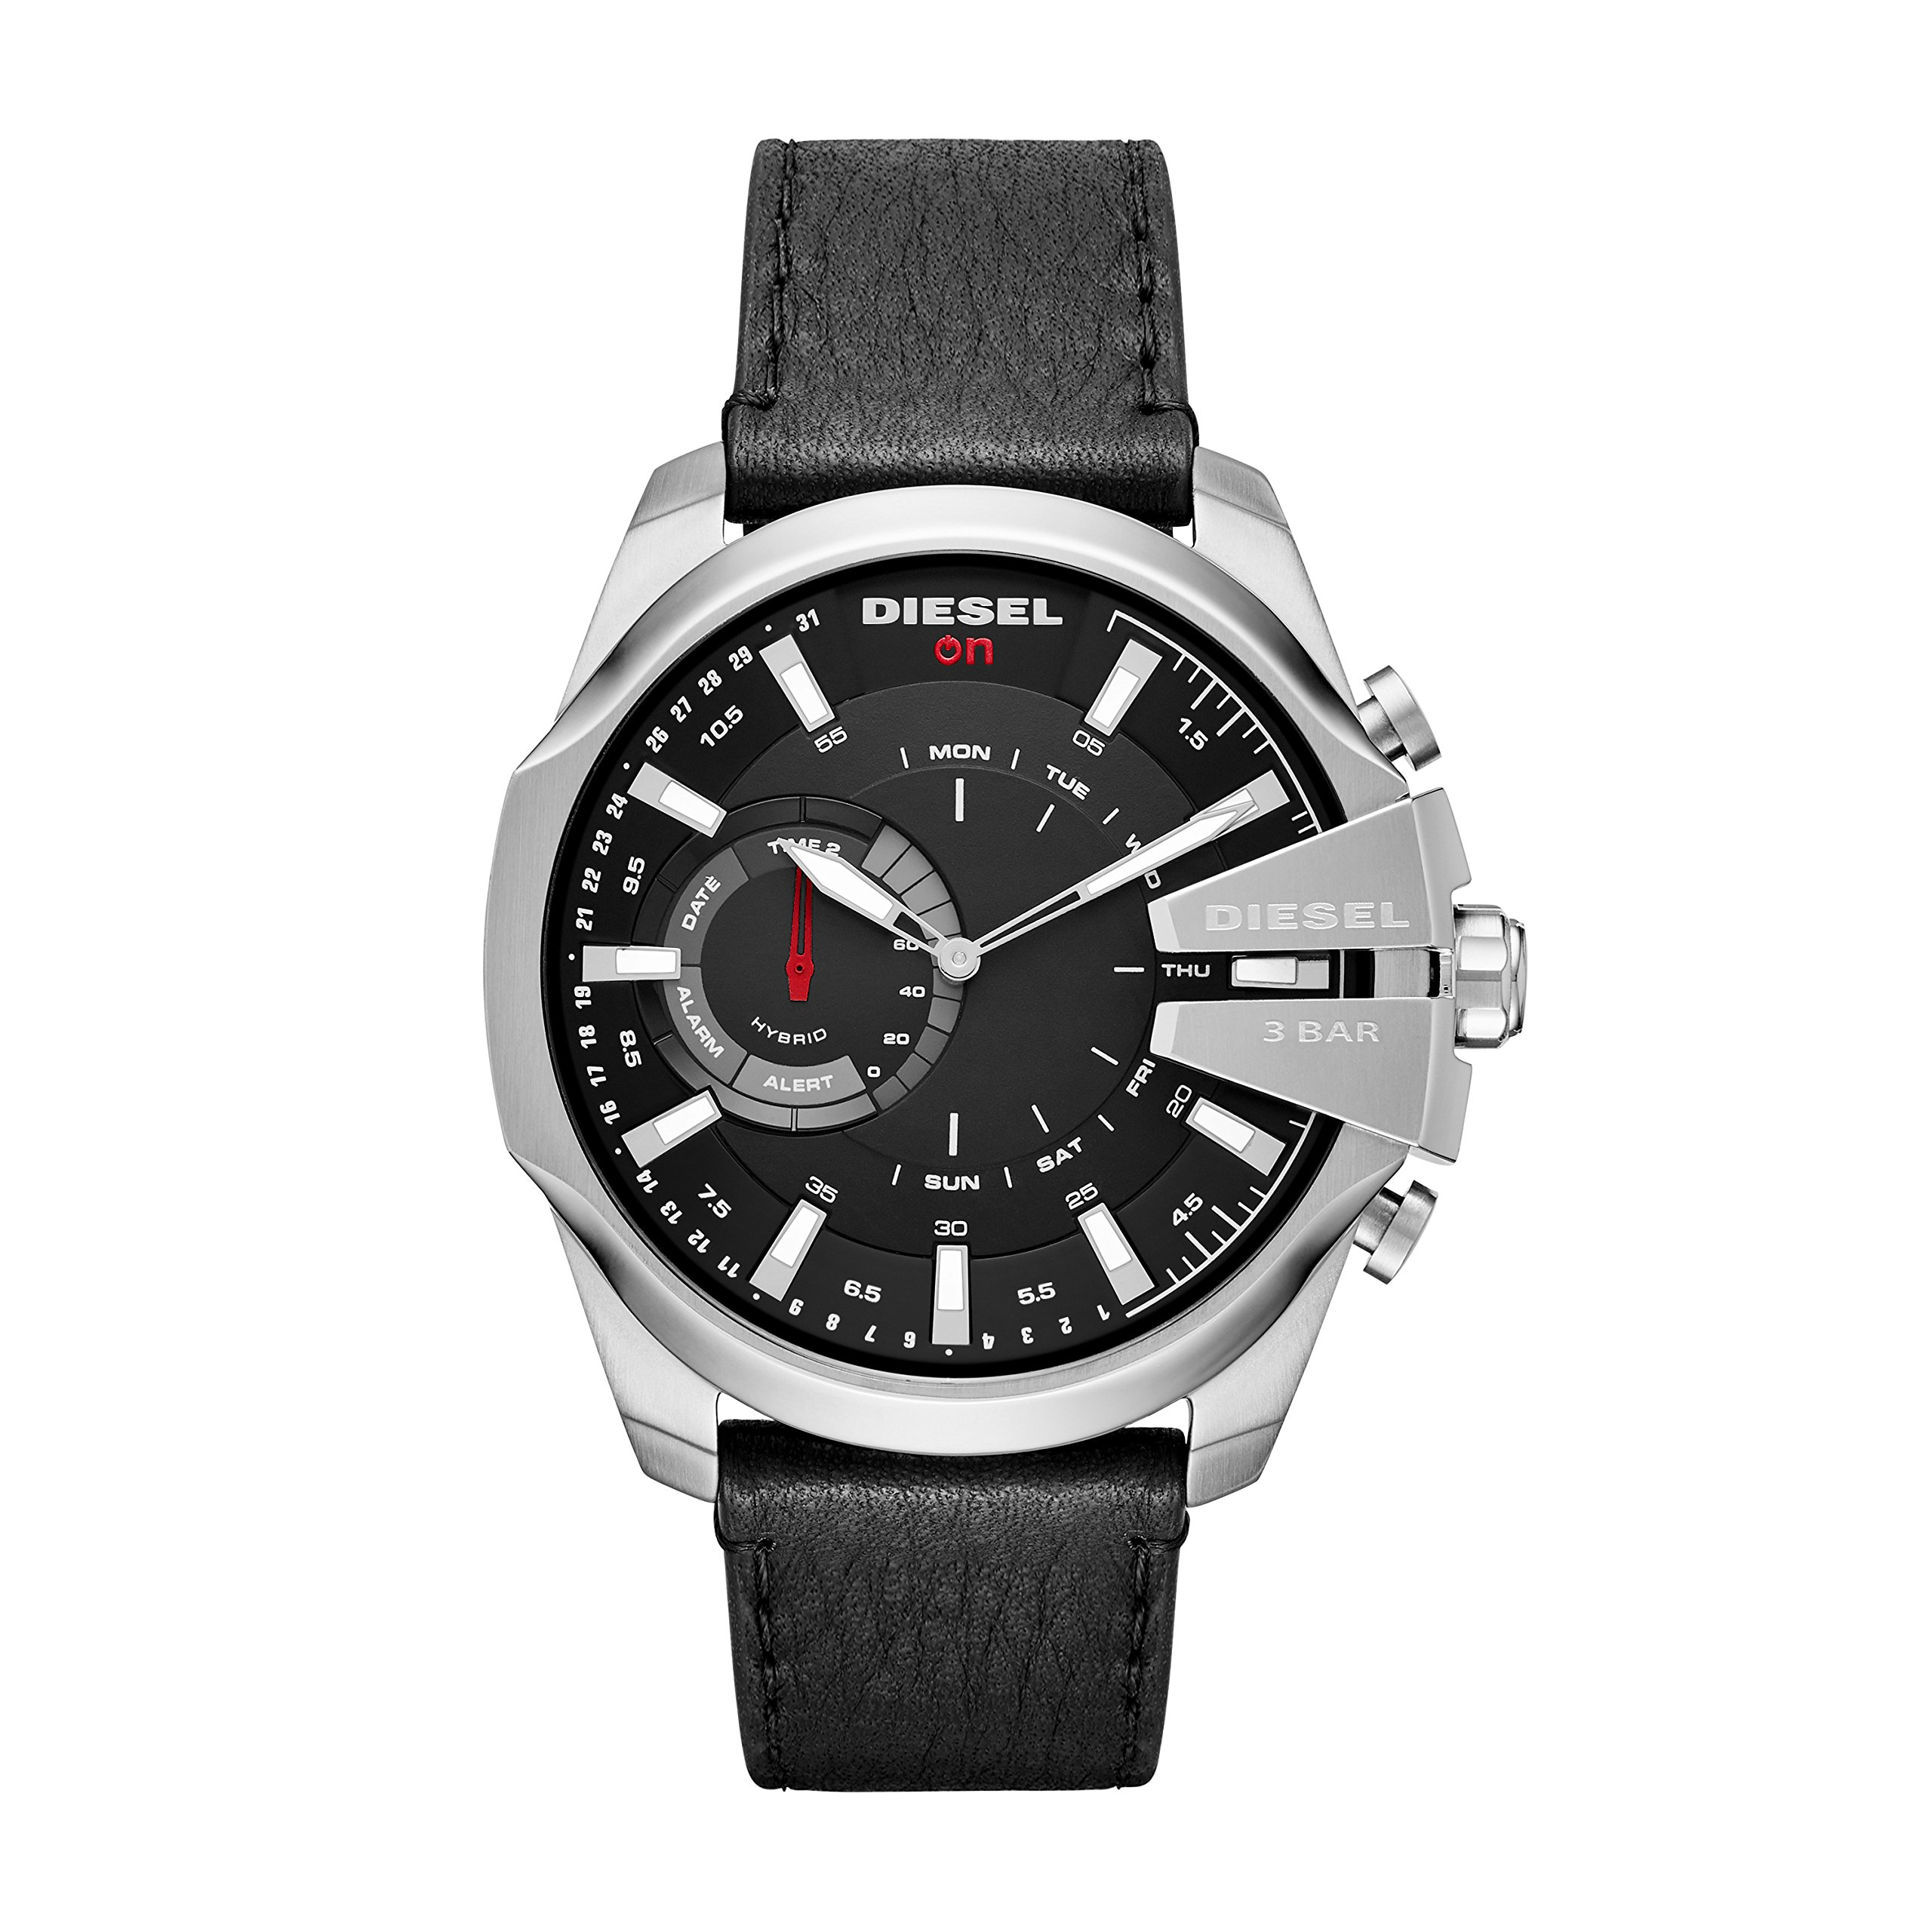 Diesel Smart Watch (Model: DZT1010